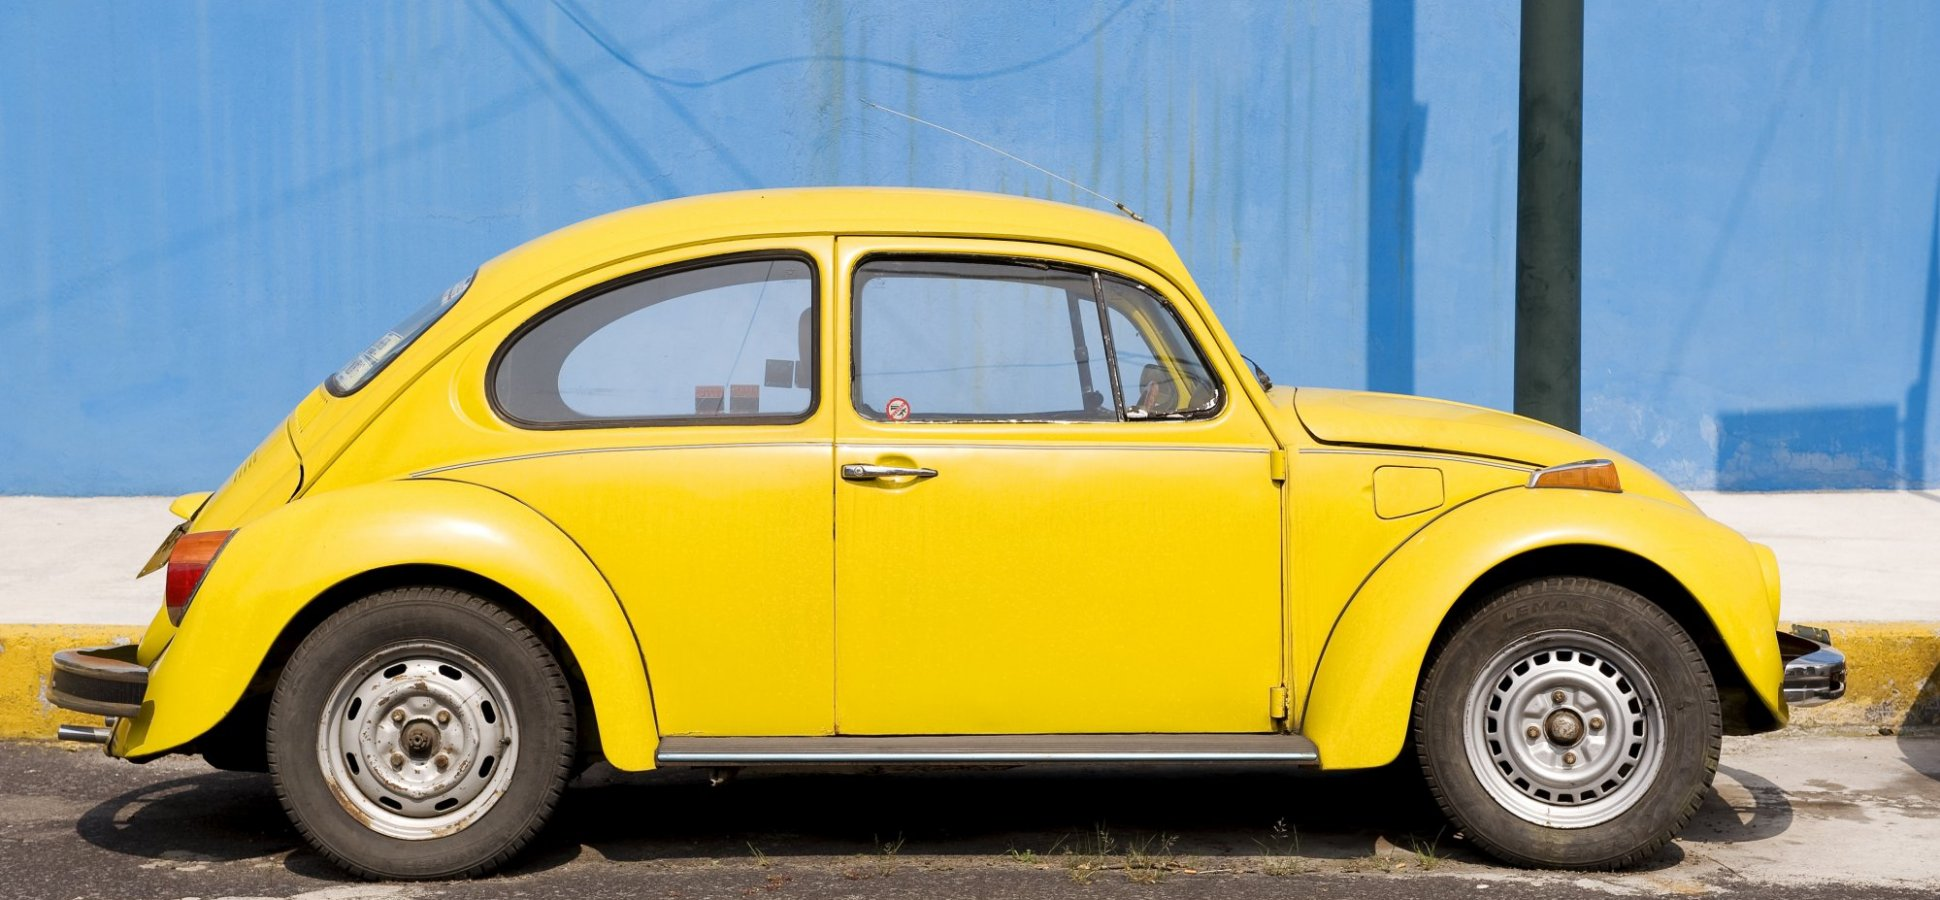 For sale 1964 volkswagen beetle price 1 million its the most important and iconic car of all time